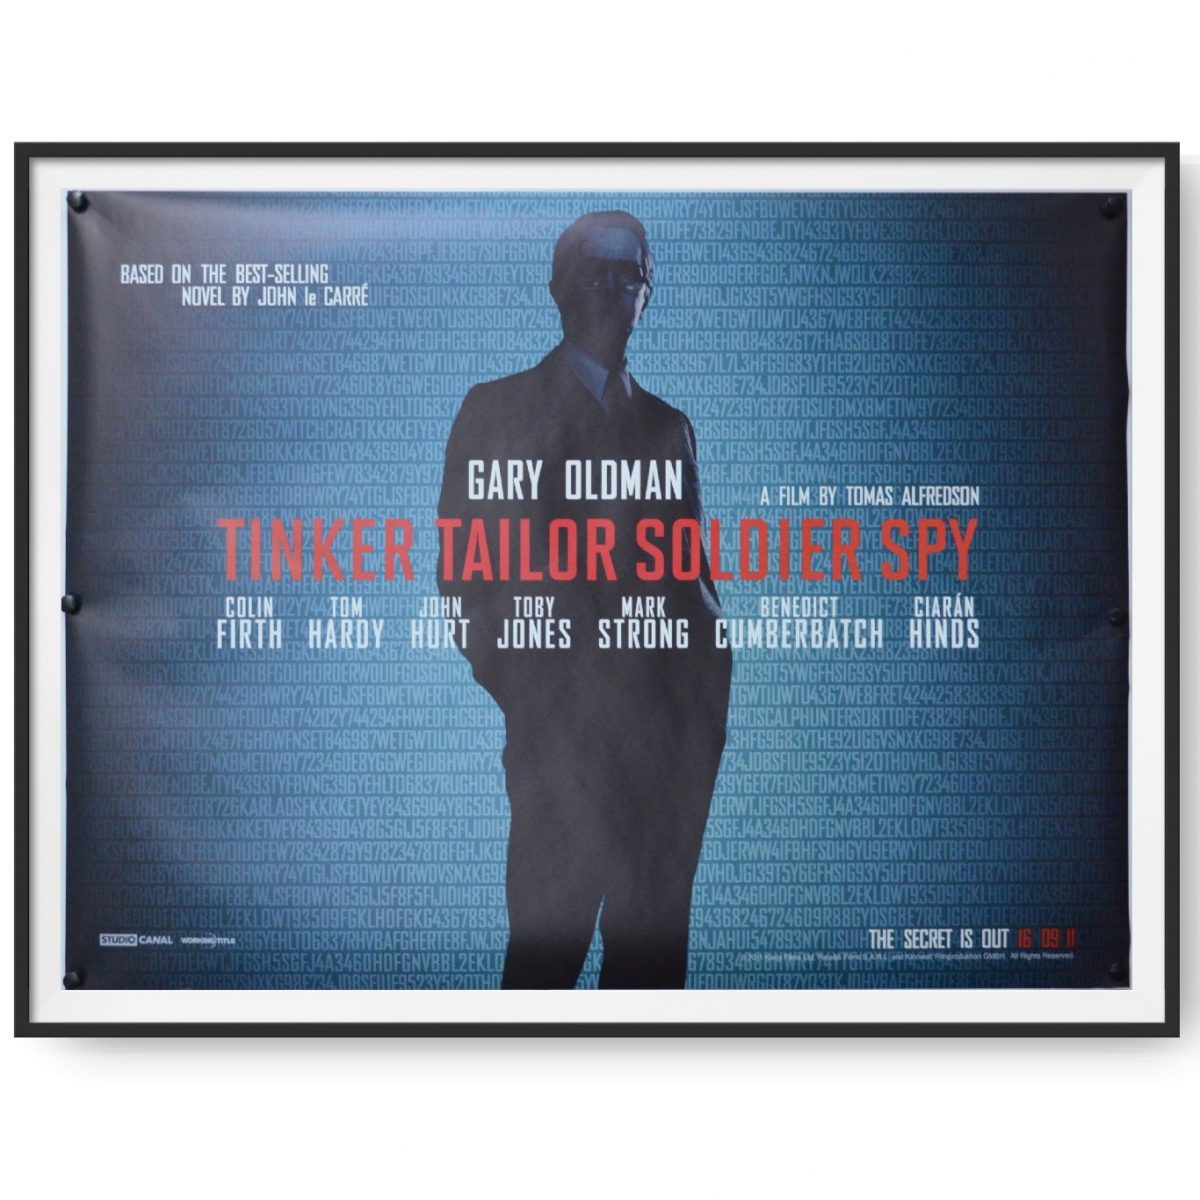 This image for the film Tinker Tailor Soldier Spy shows Gary Oldman.